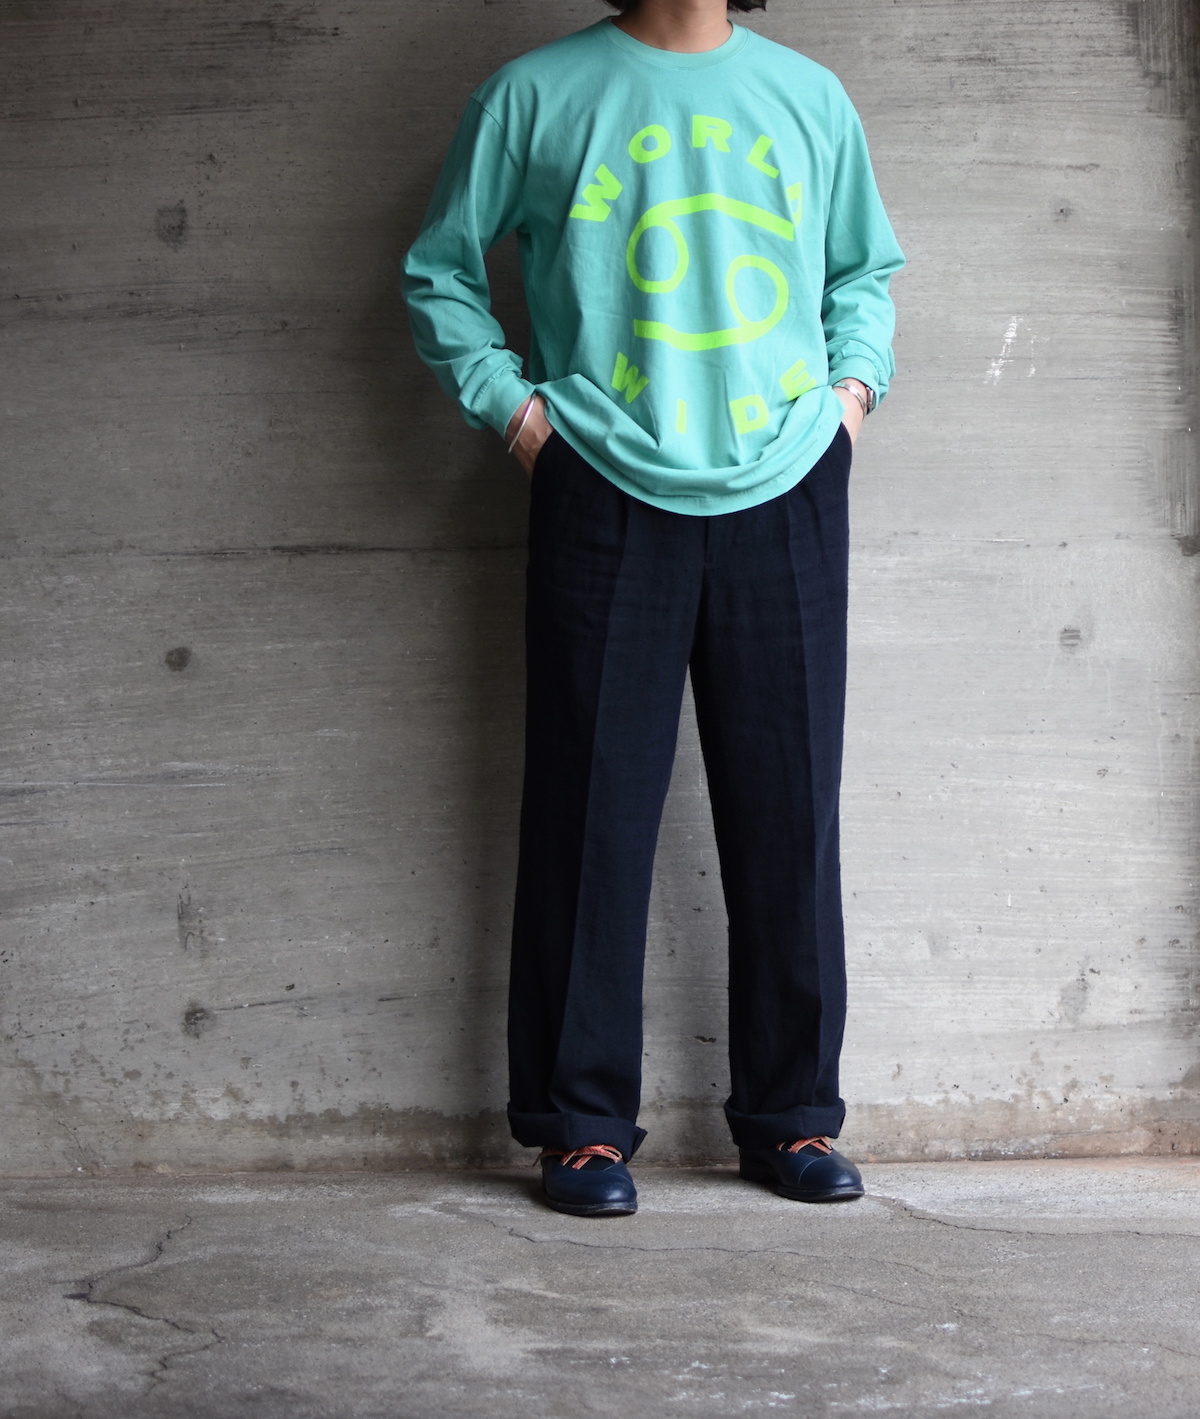 69 (SIXTY NINE) 「69 WORLD WIDE LONG SLEEVE TEE / SURGICAL GREEN/LIME GREEN INK」